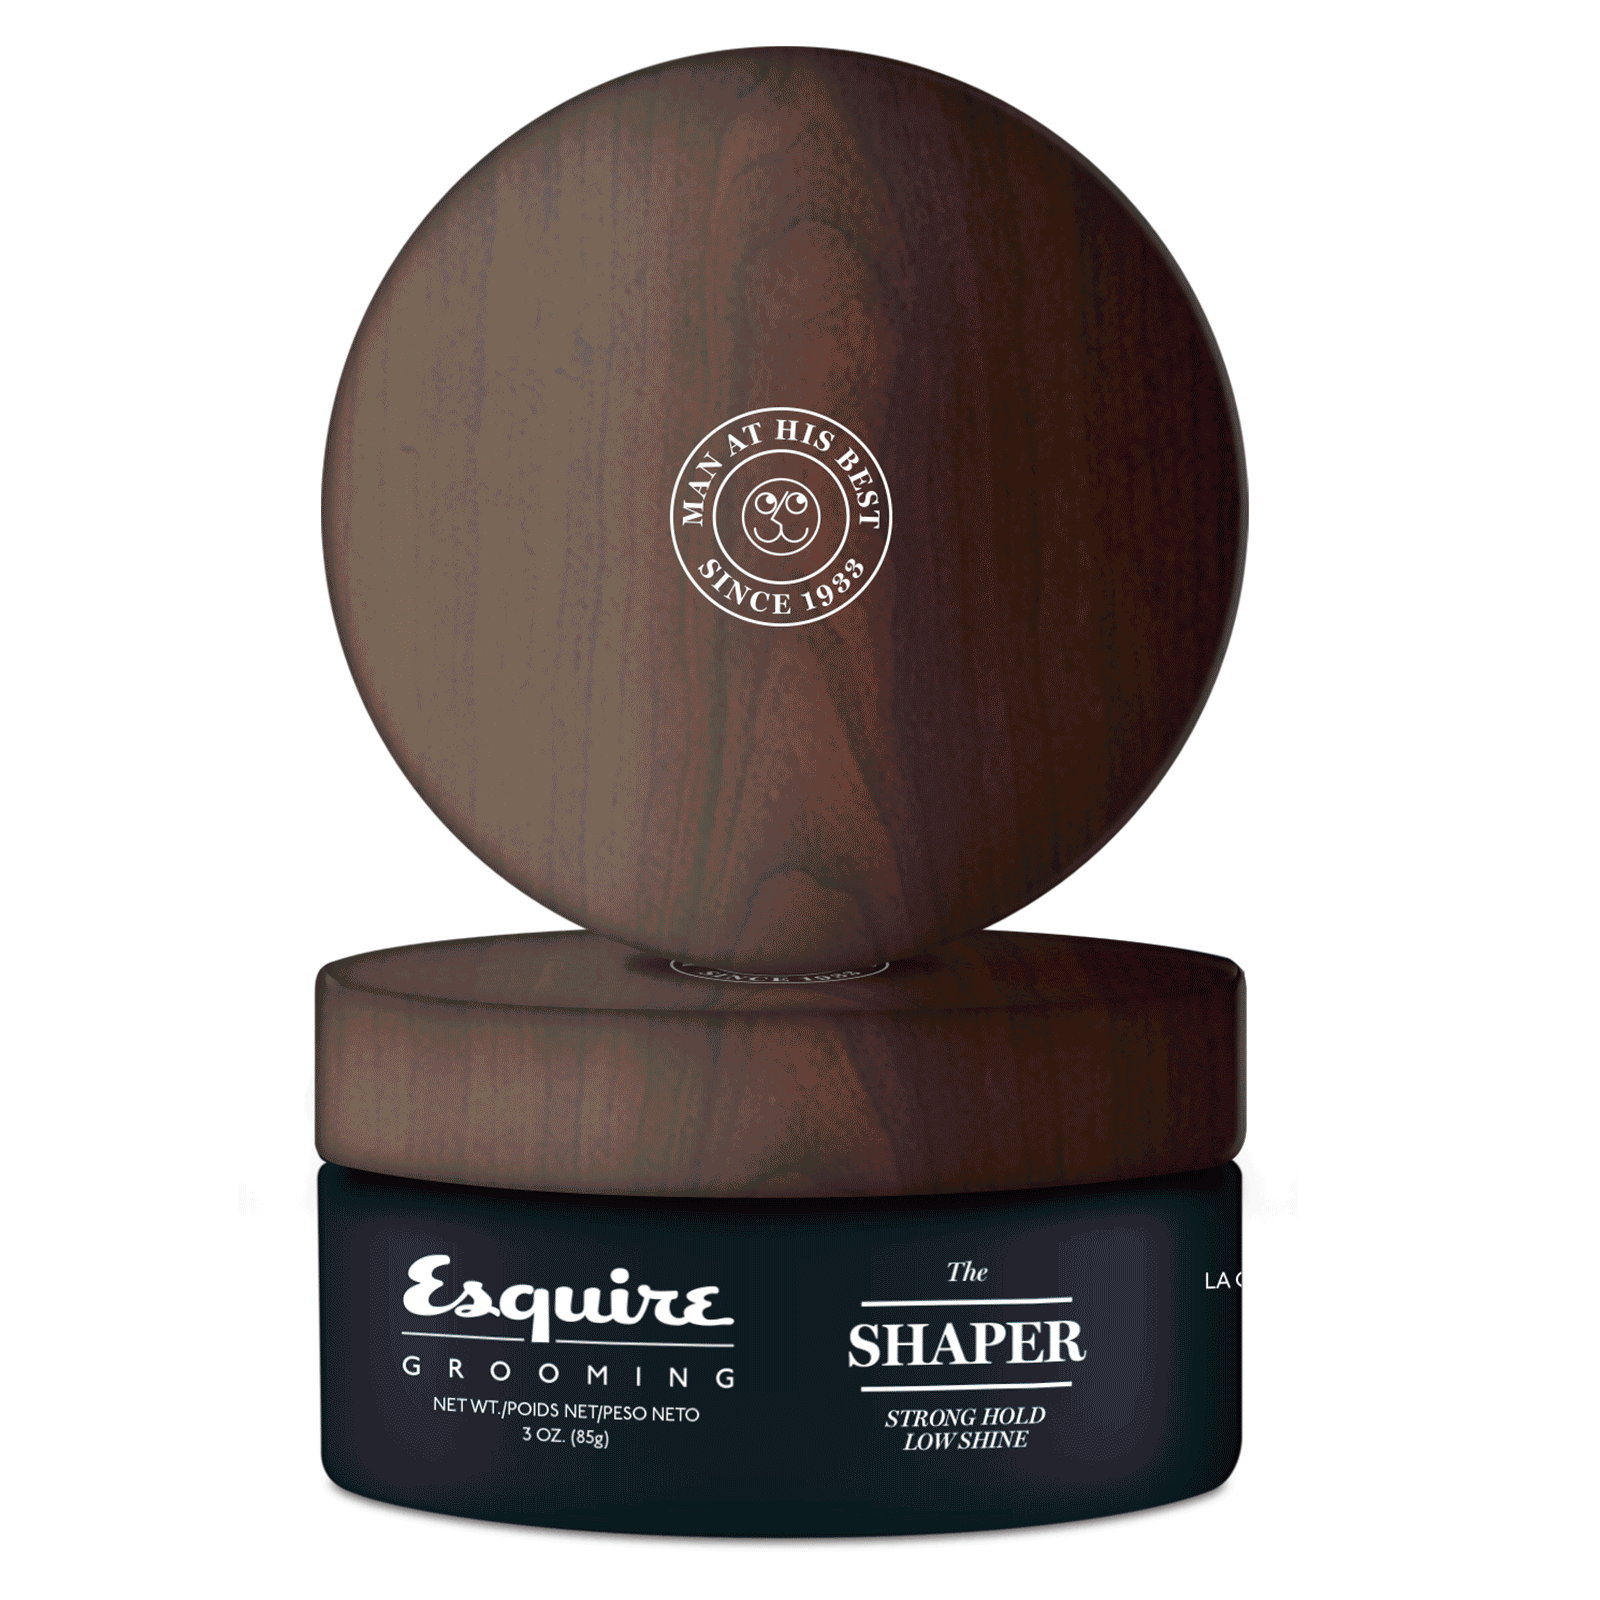 Esquire Grooming The Shaper